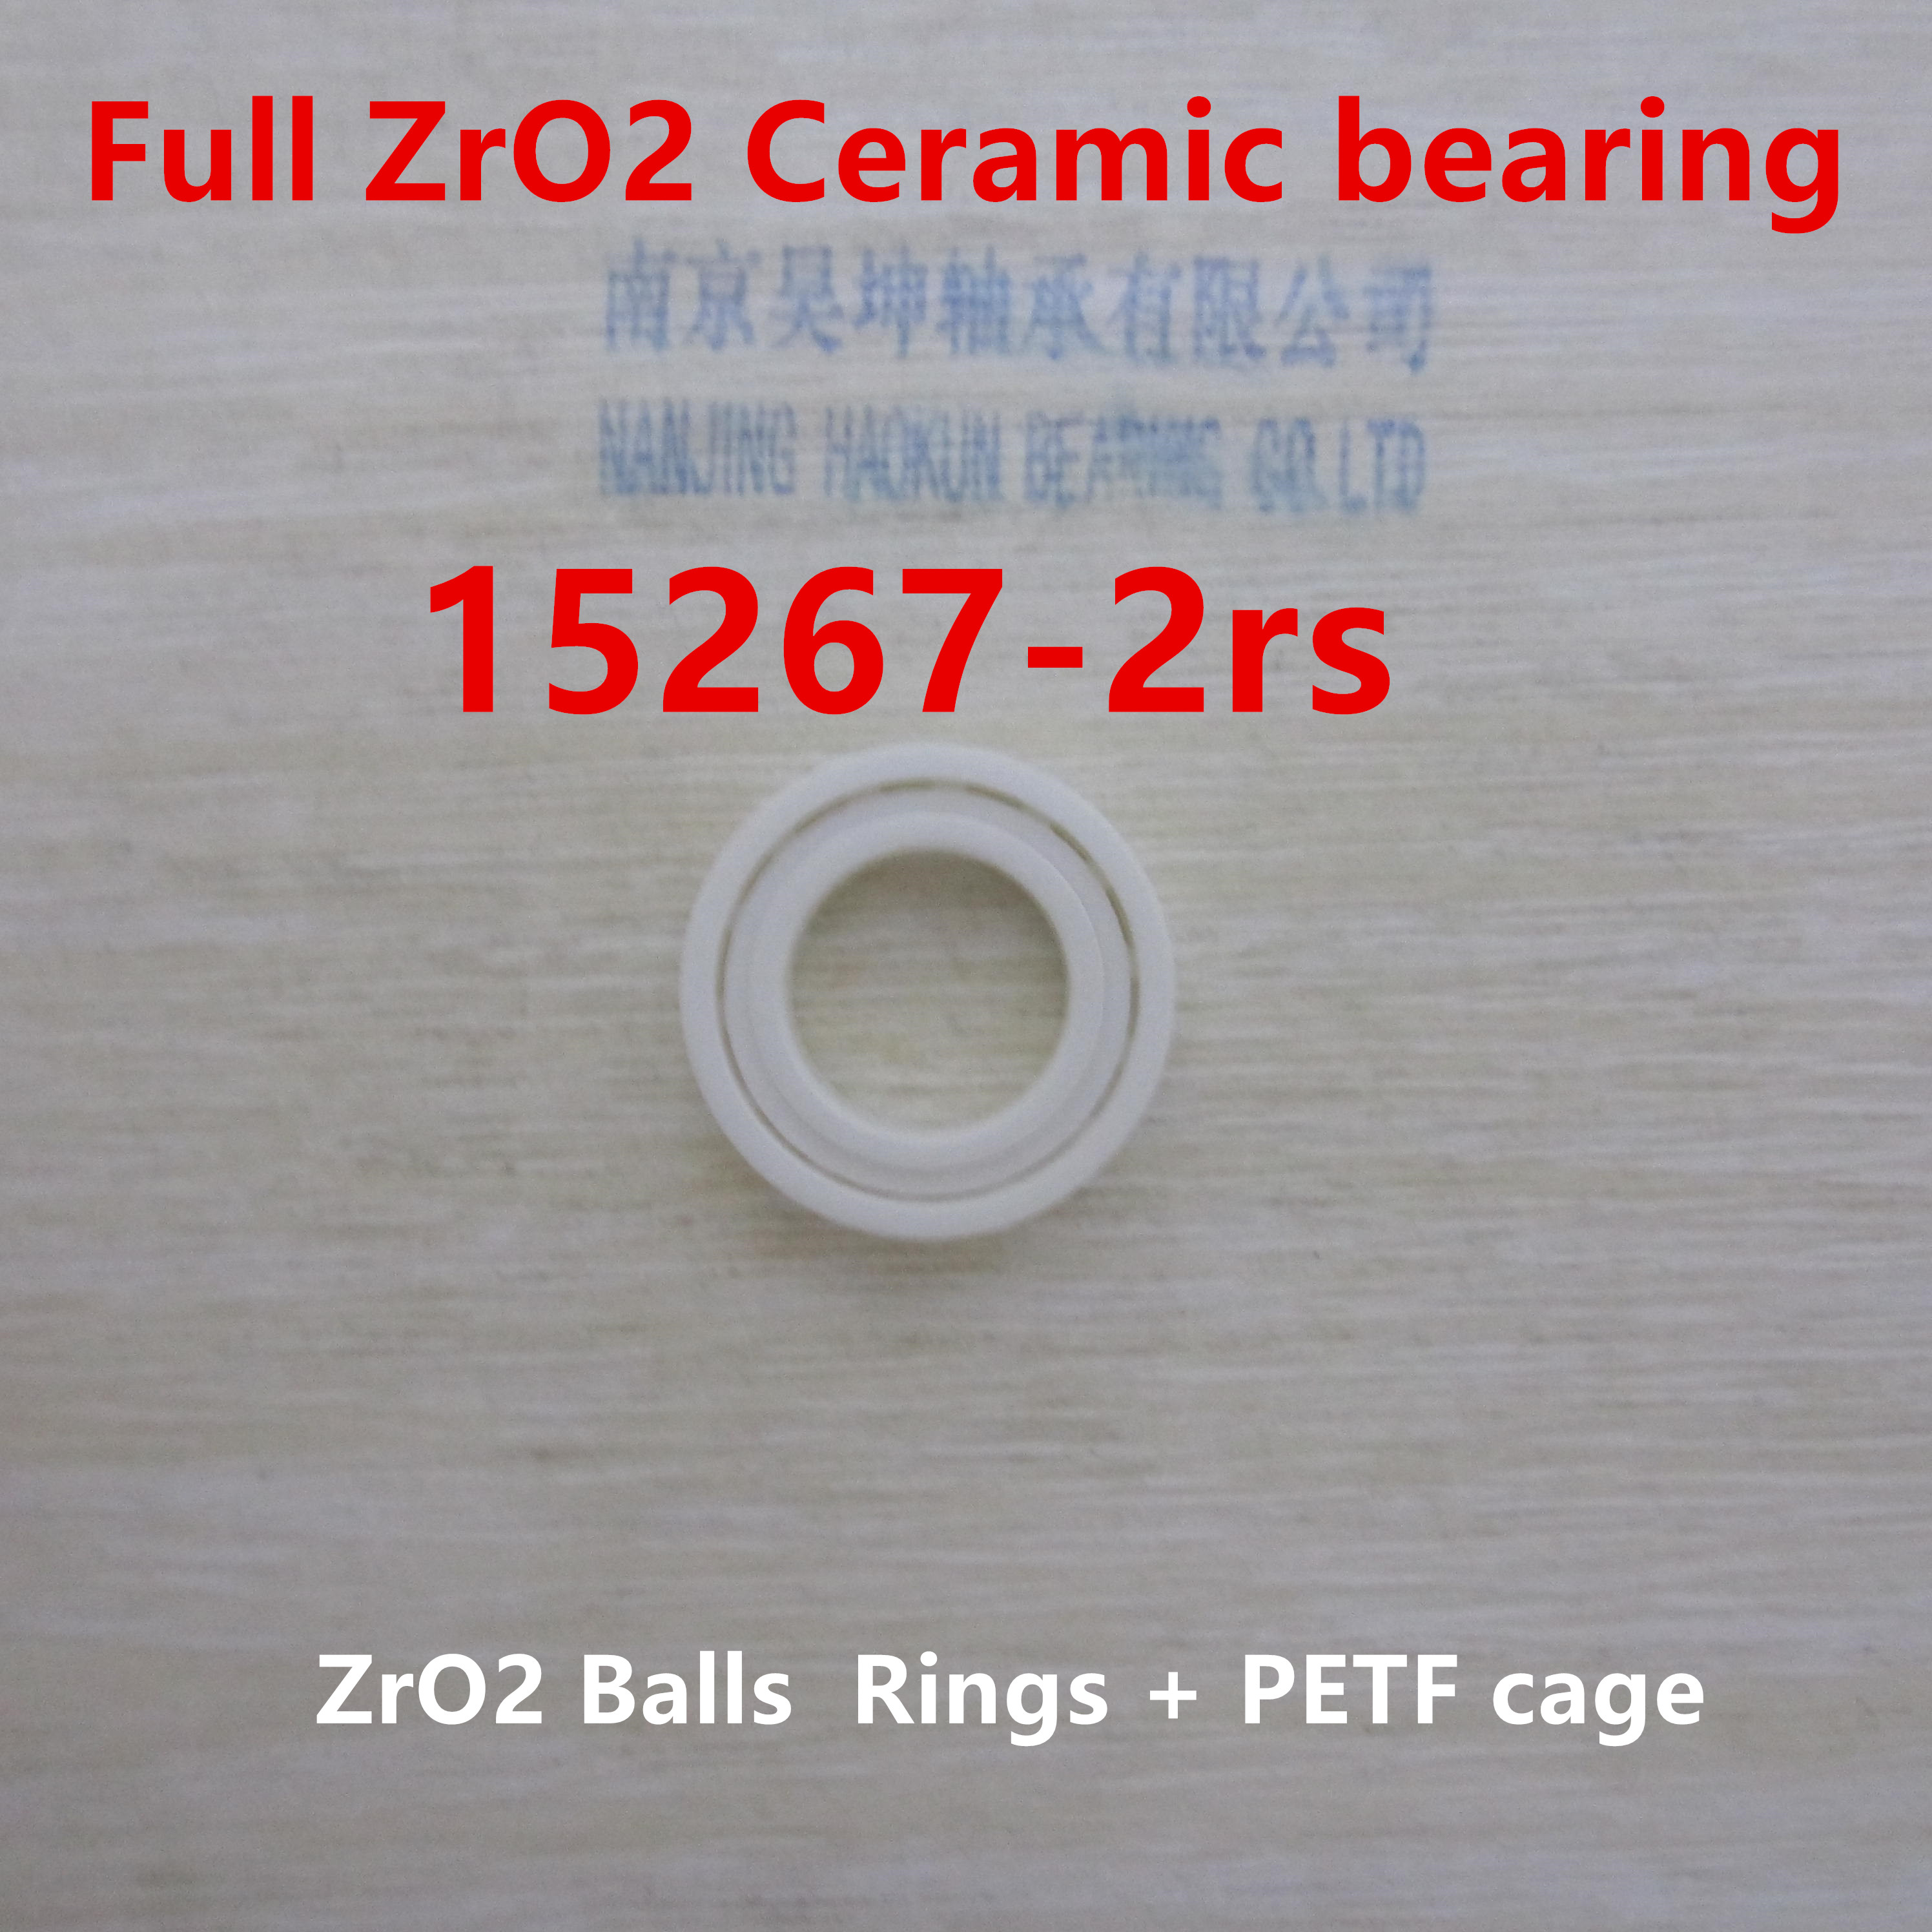 где купить 15267-2rs Ceramic wheel hub bearing zro2 15267 15*26*7mm full zro2 ceramic bike bearing по лучшей цене